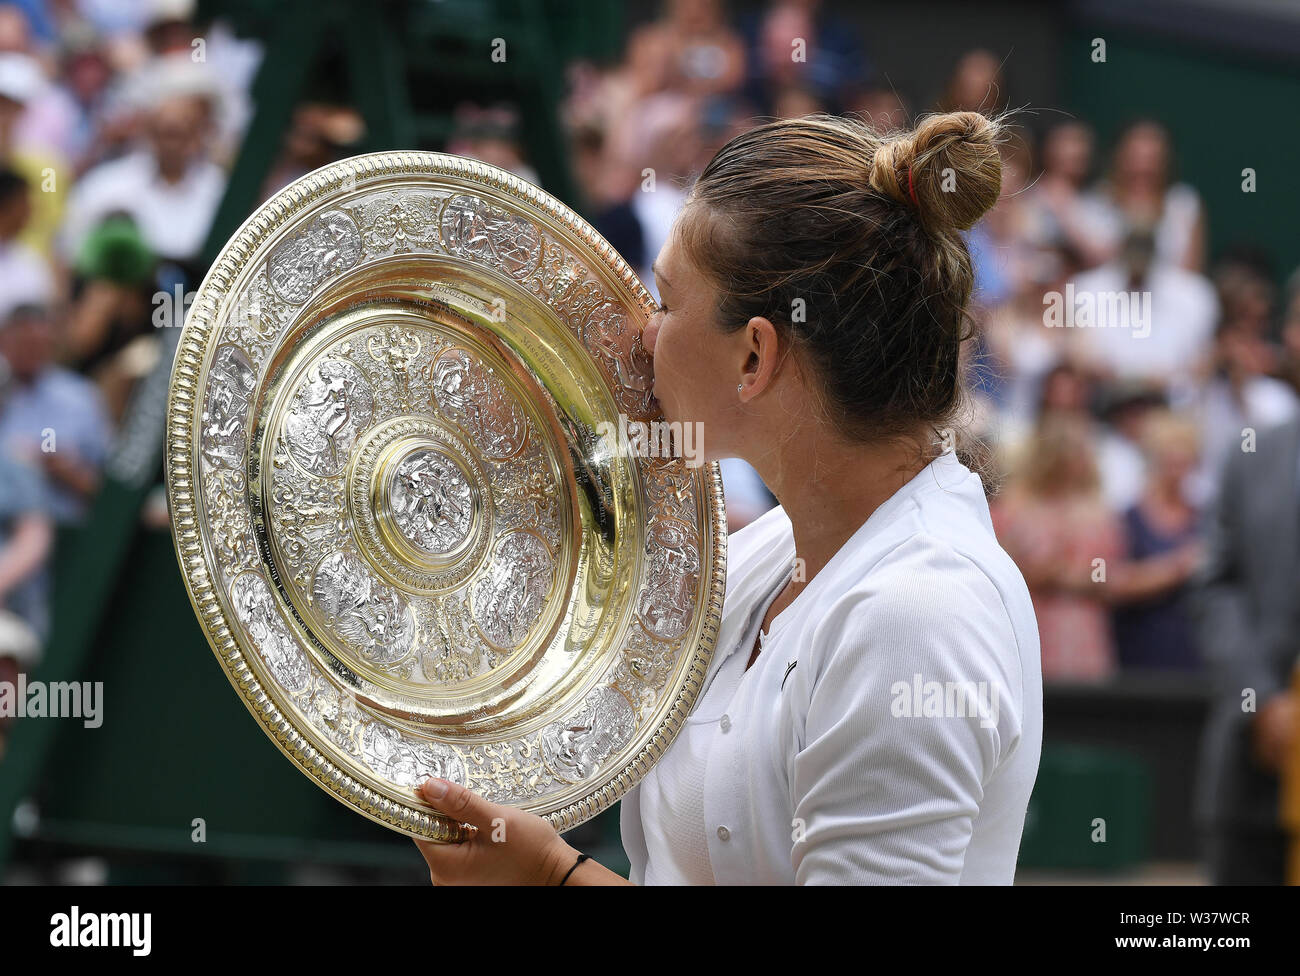 London, UK. 13th July, 2019. The Championships Wimbledon 2019 13072019 Simona Halep with winners trophy the Venus rosewater Dish after she wins Ladies Singles Final Credit: Roger Parker/Alamy Live News - Stock Image